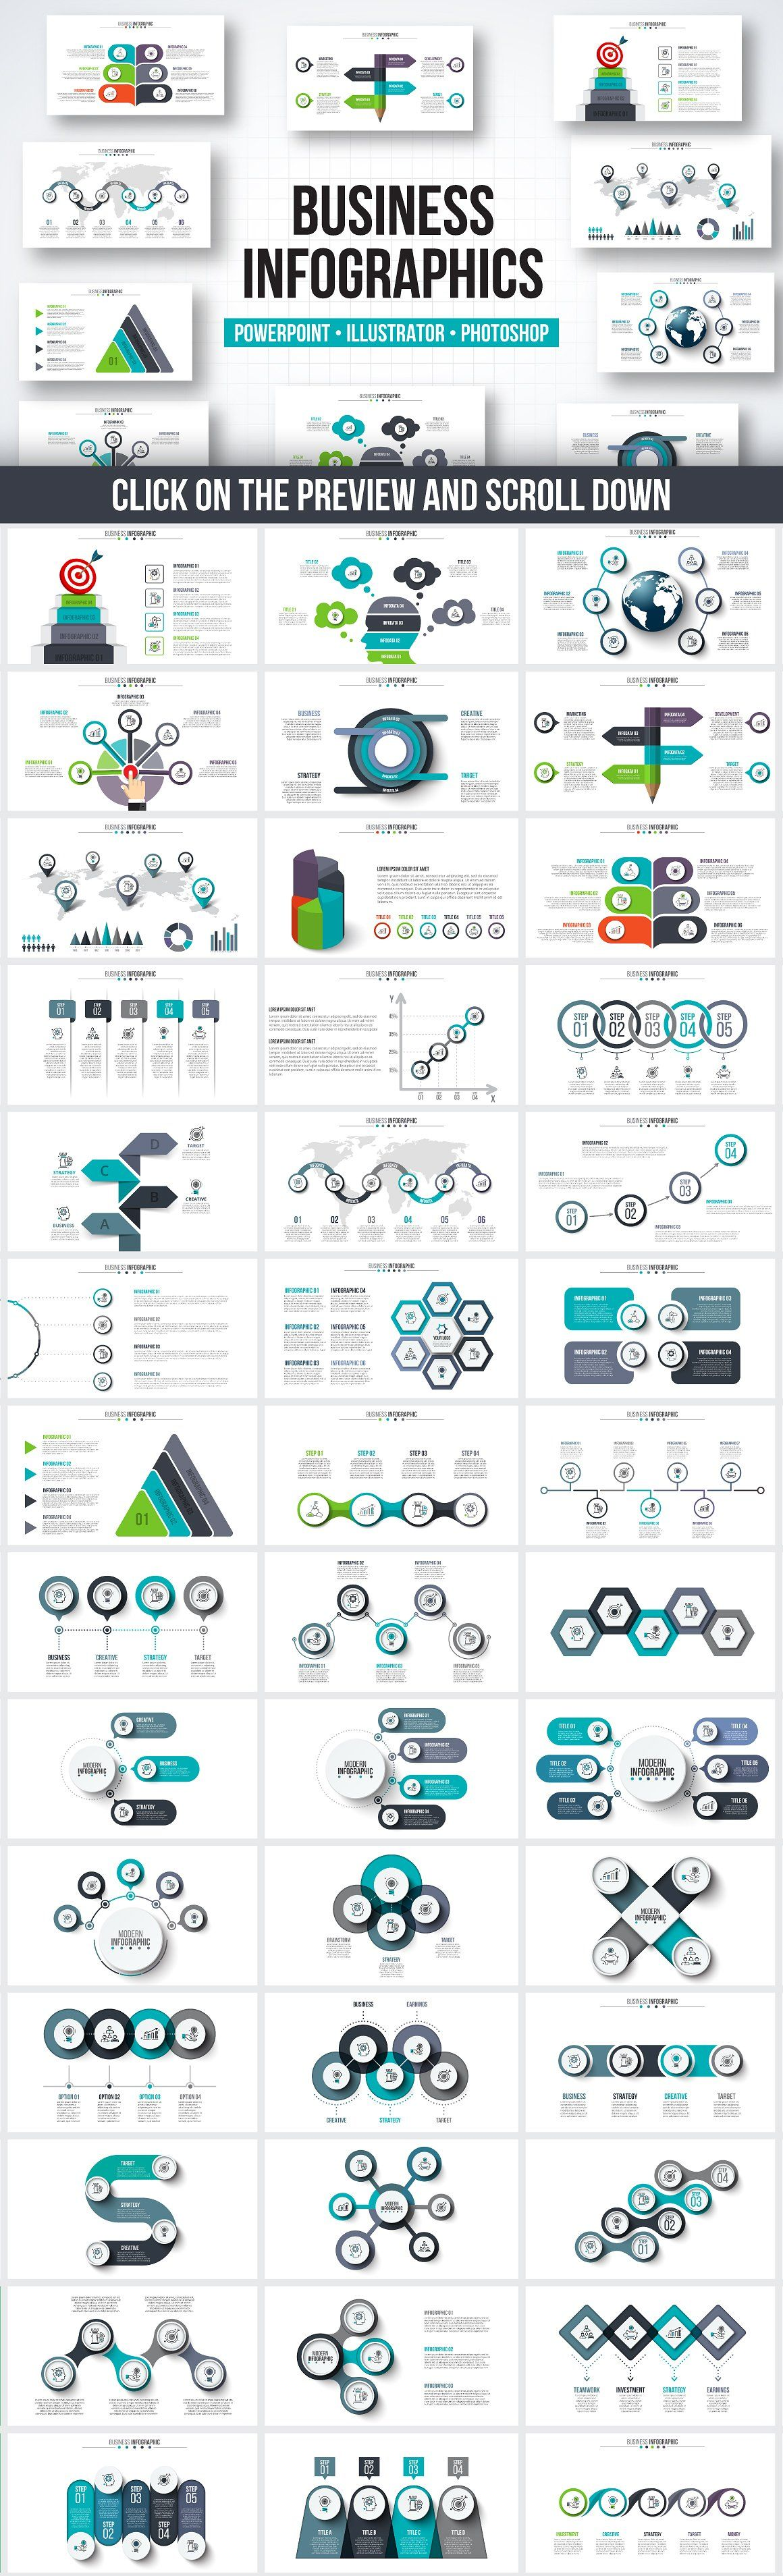 Ppt Infographic Elements Bundle By Abert  Business And Home